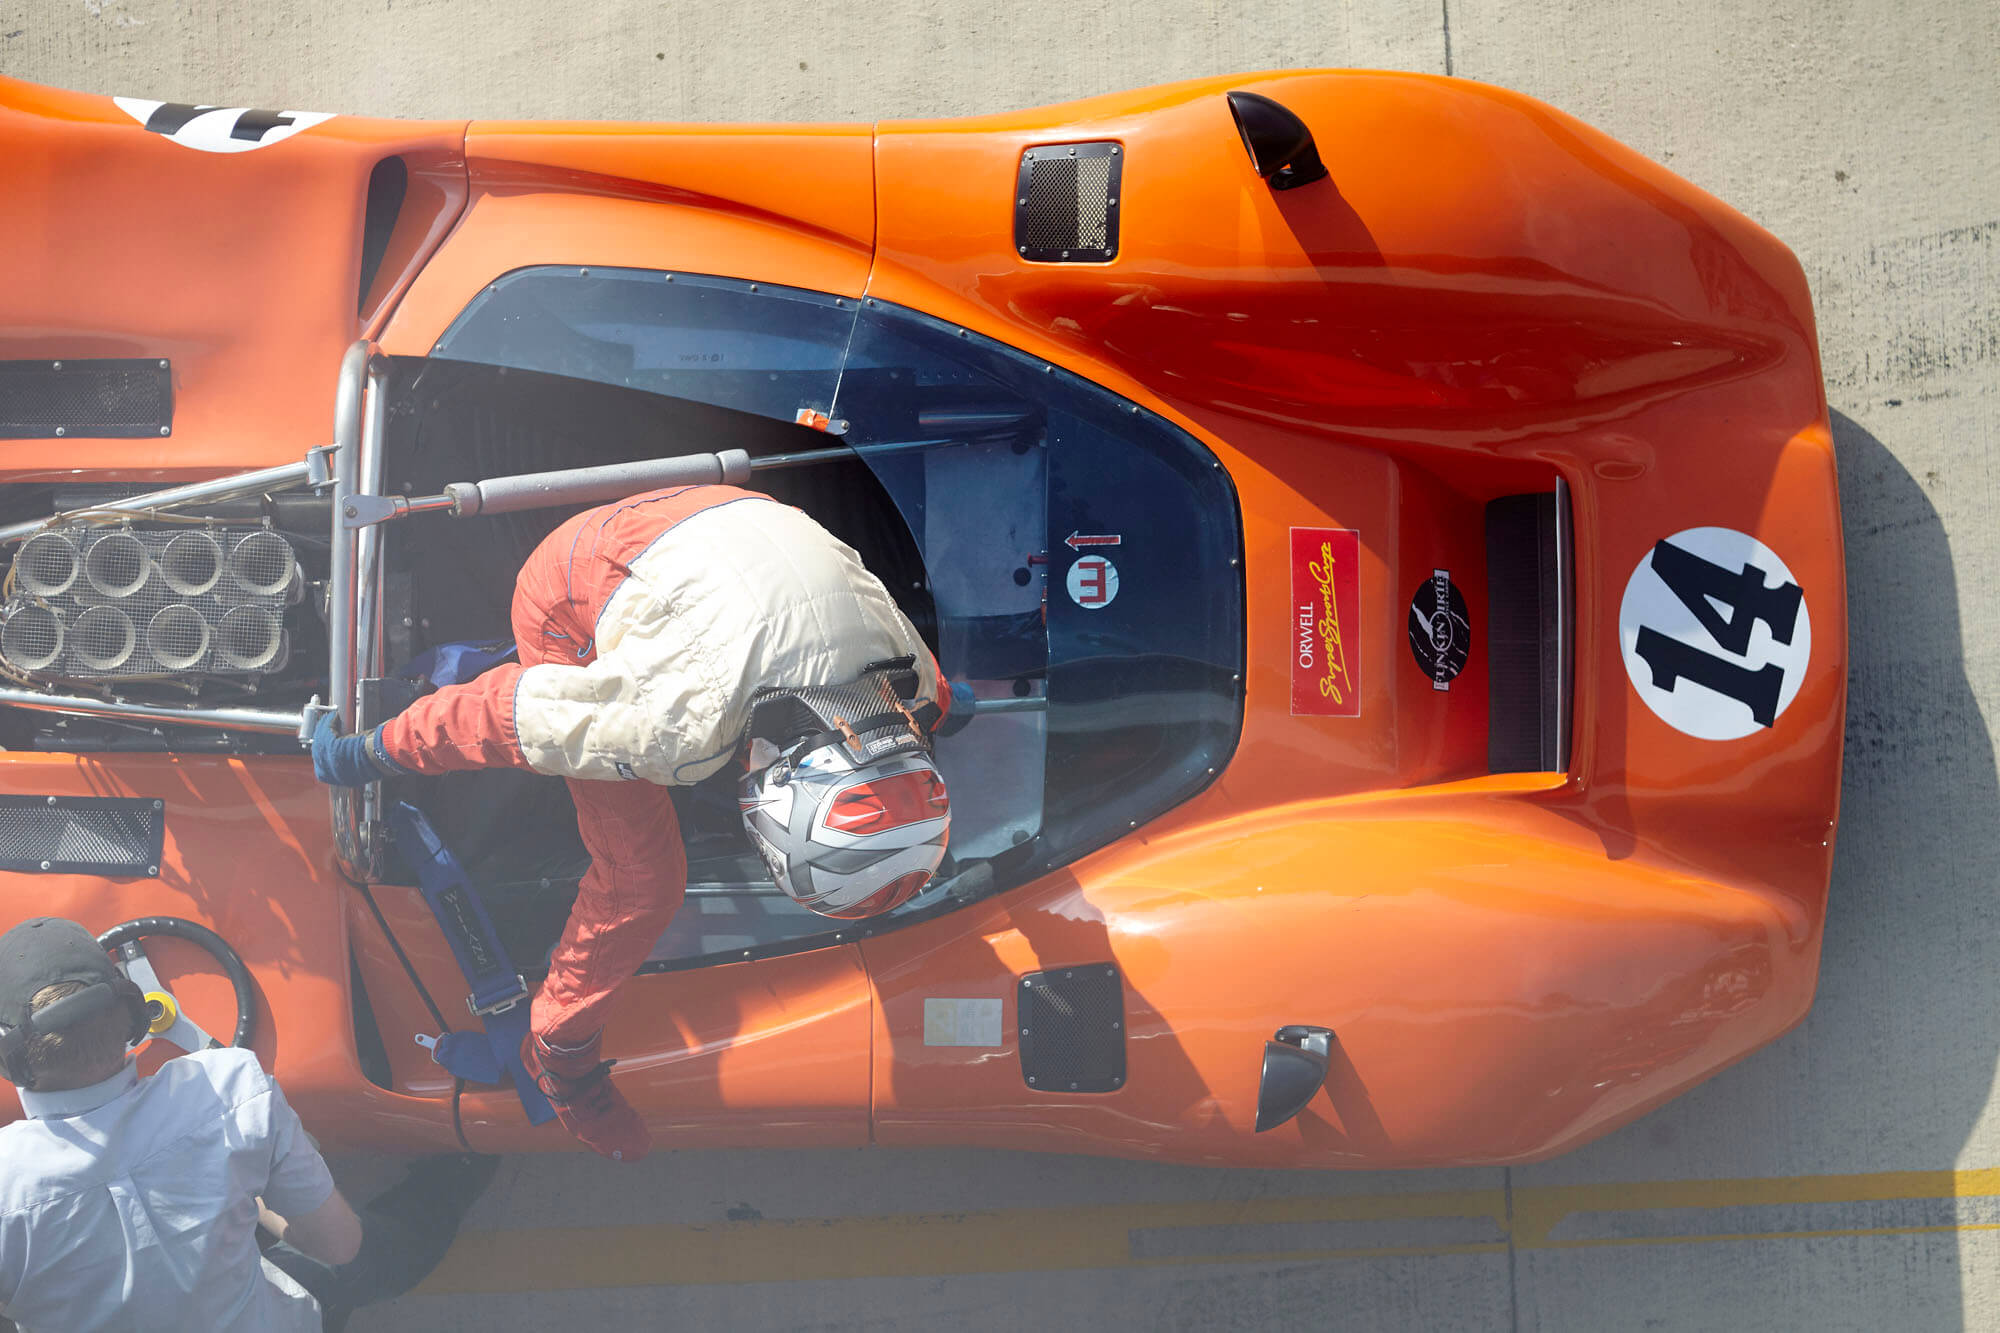 Aerial image of a race competitor climbing out of a classic orange race car at The Classic at Silverstone